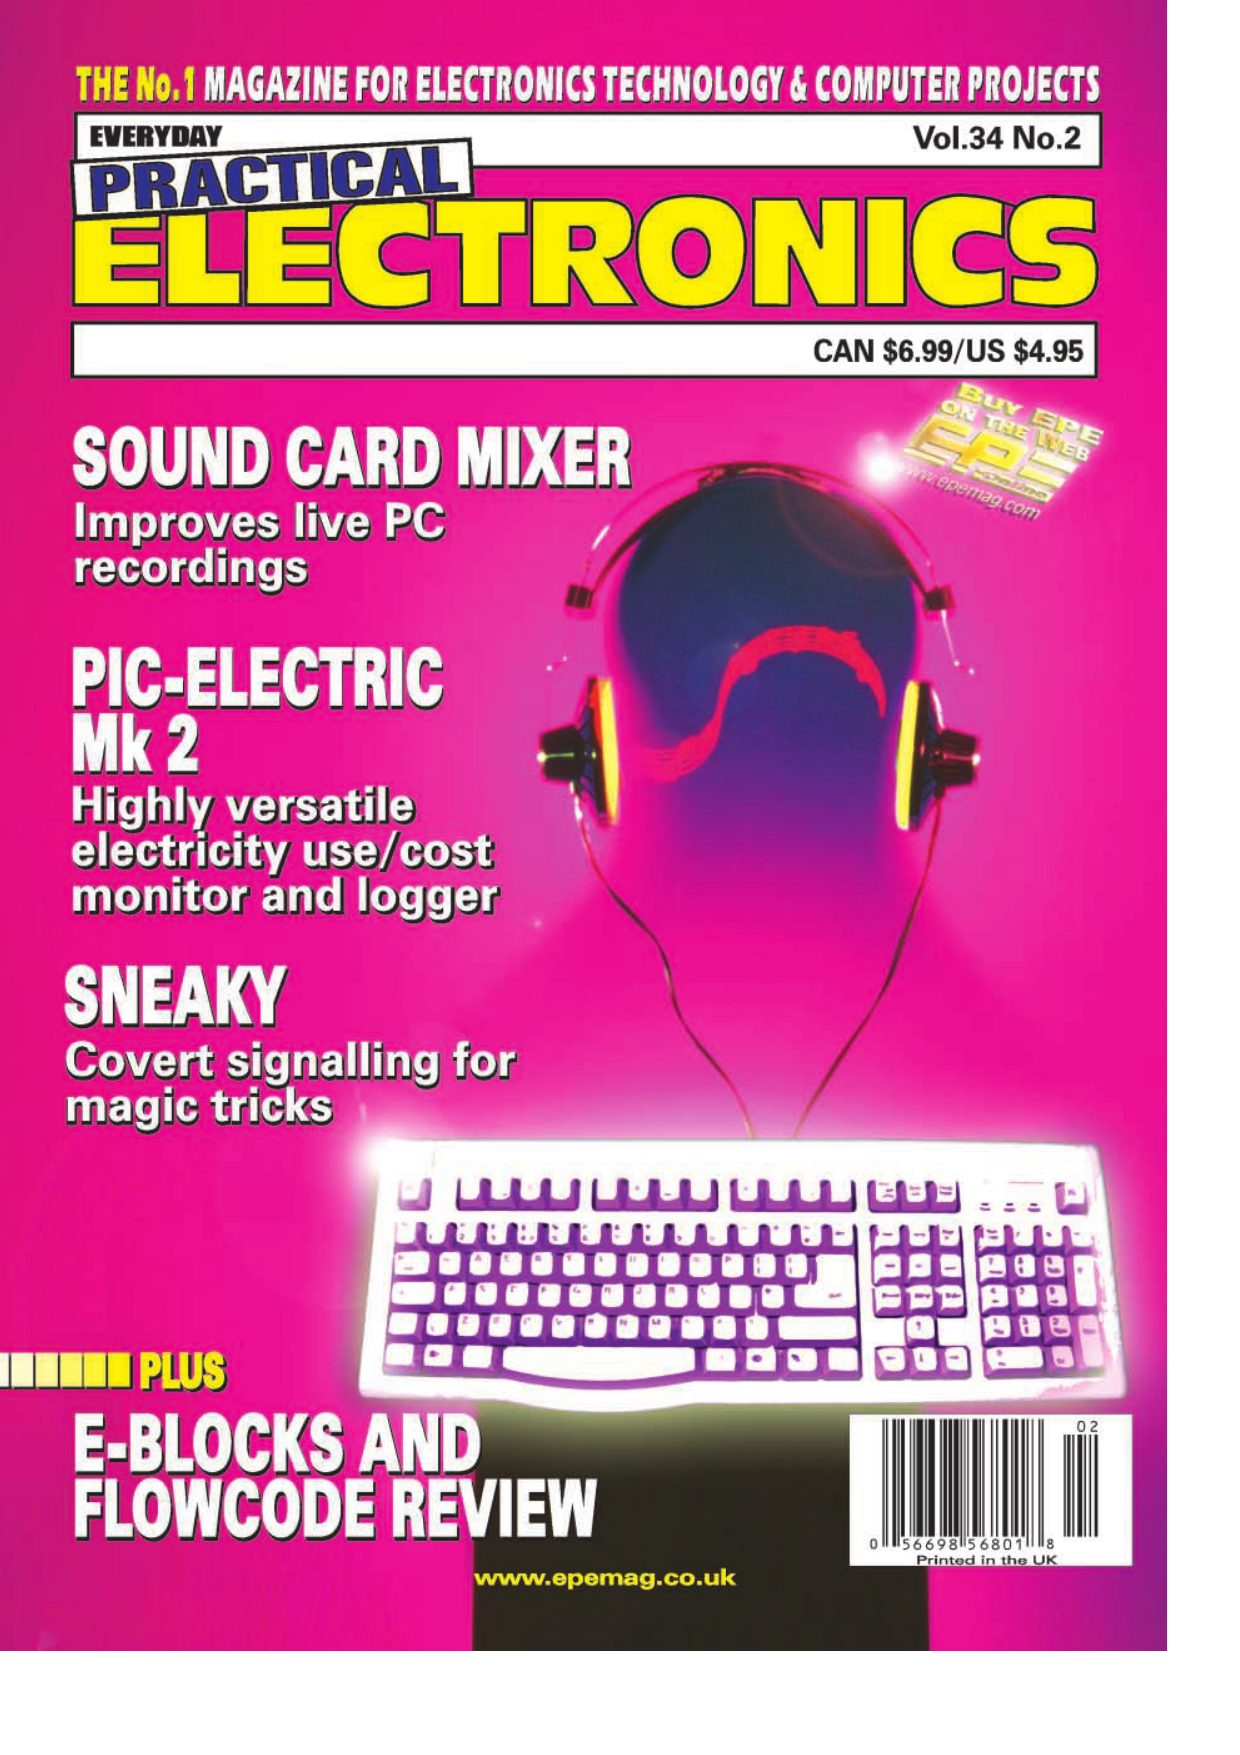 88a17cc70 Everyday Practical Electronics (February) Volume 34 Number 2(2005).pdf